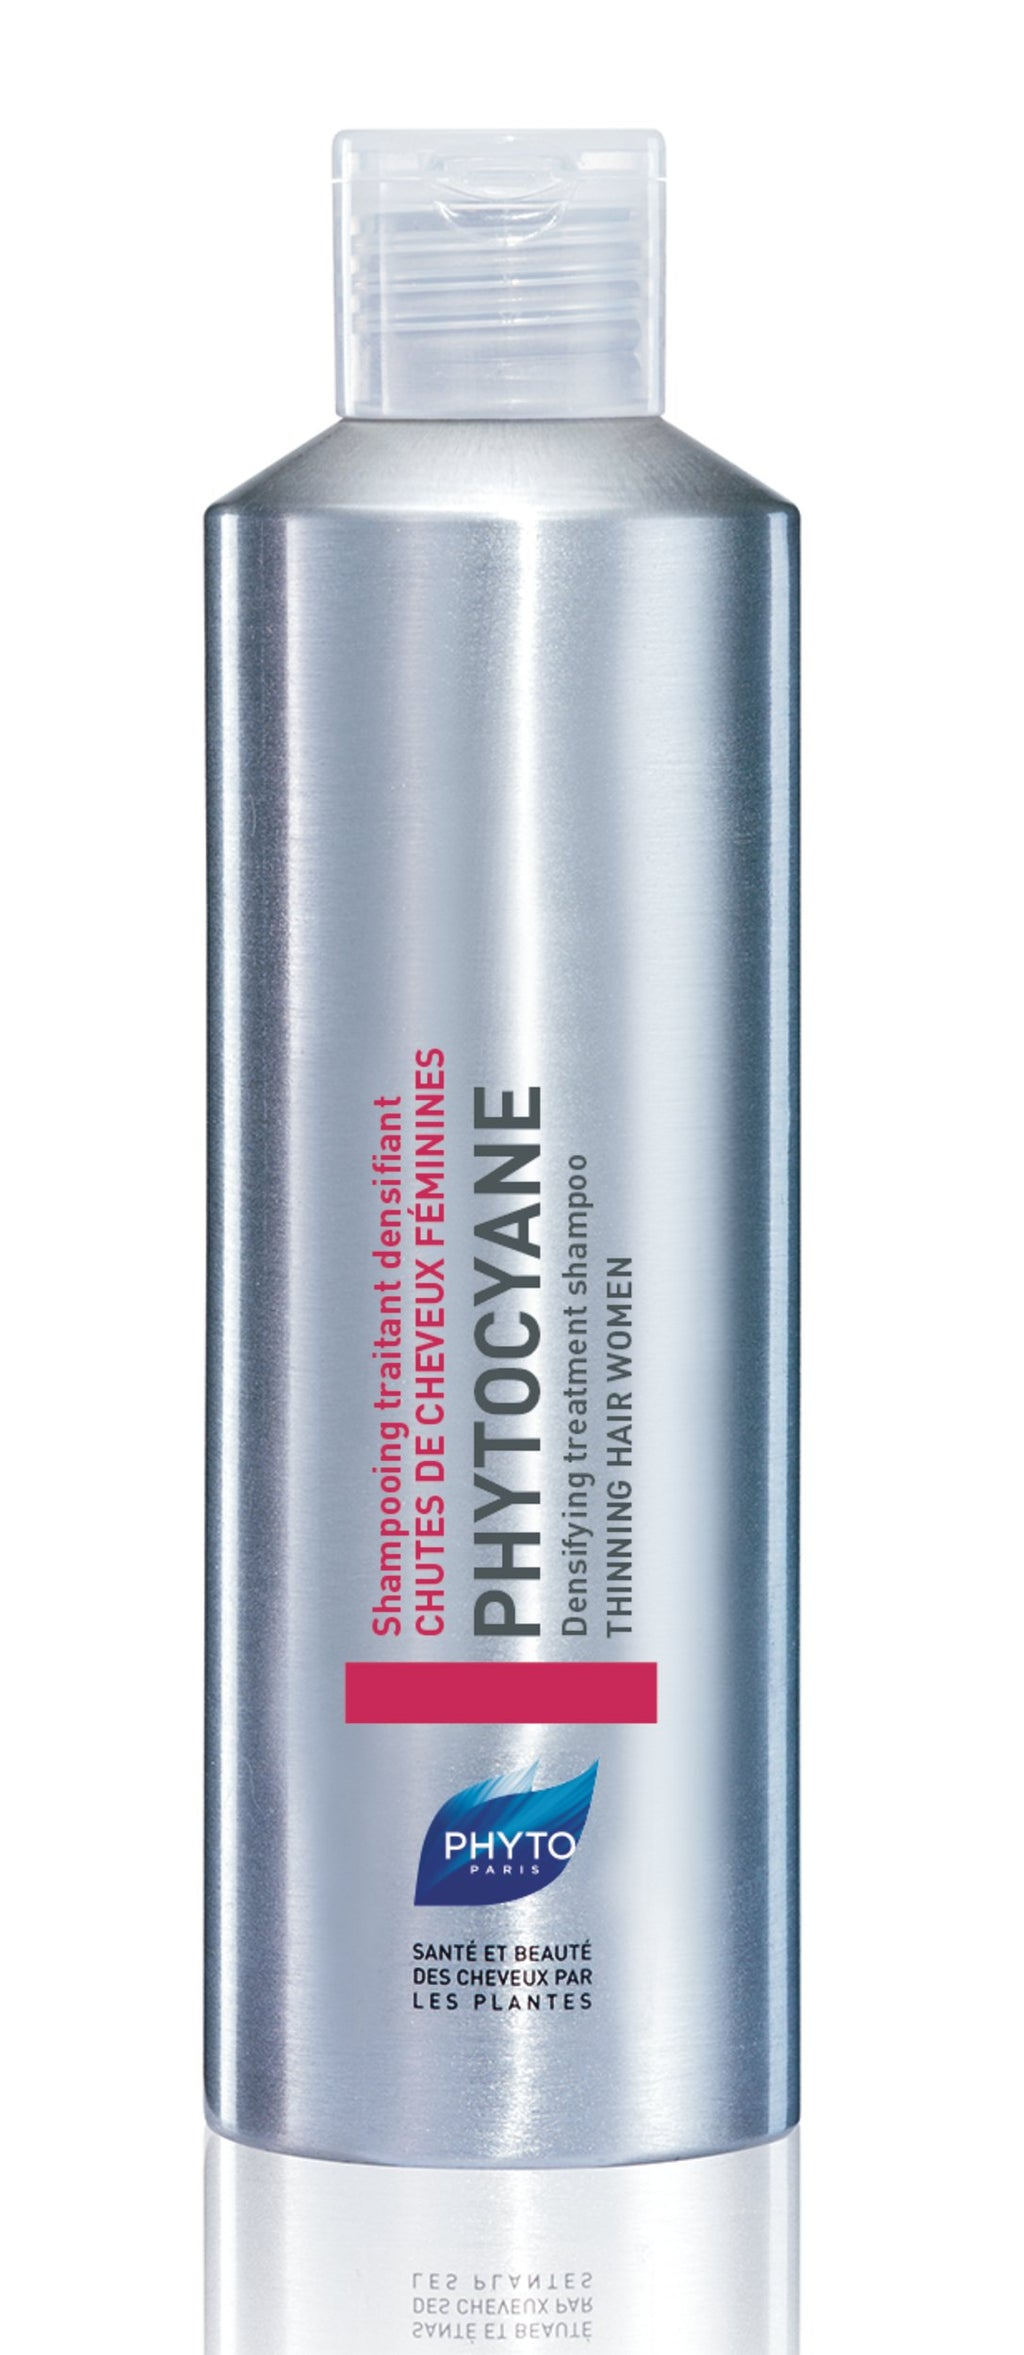 phyto-phytocyane-densifying-hair-loss-shampoo-cosmetics-online